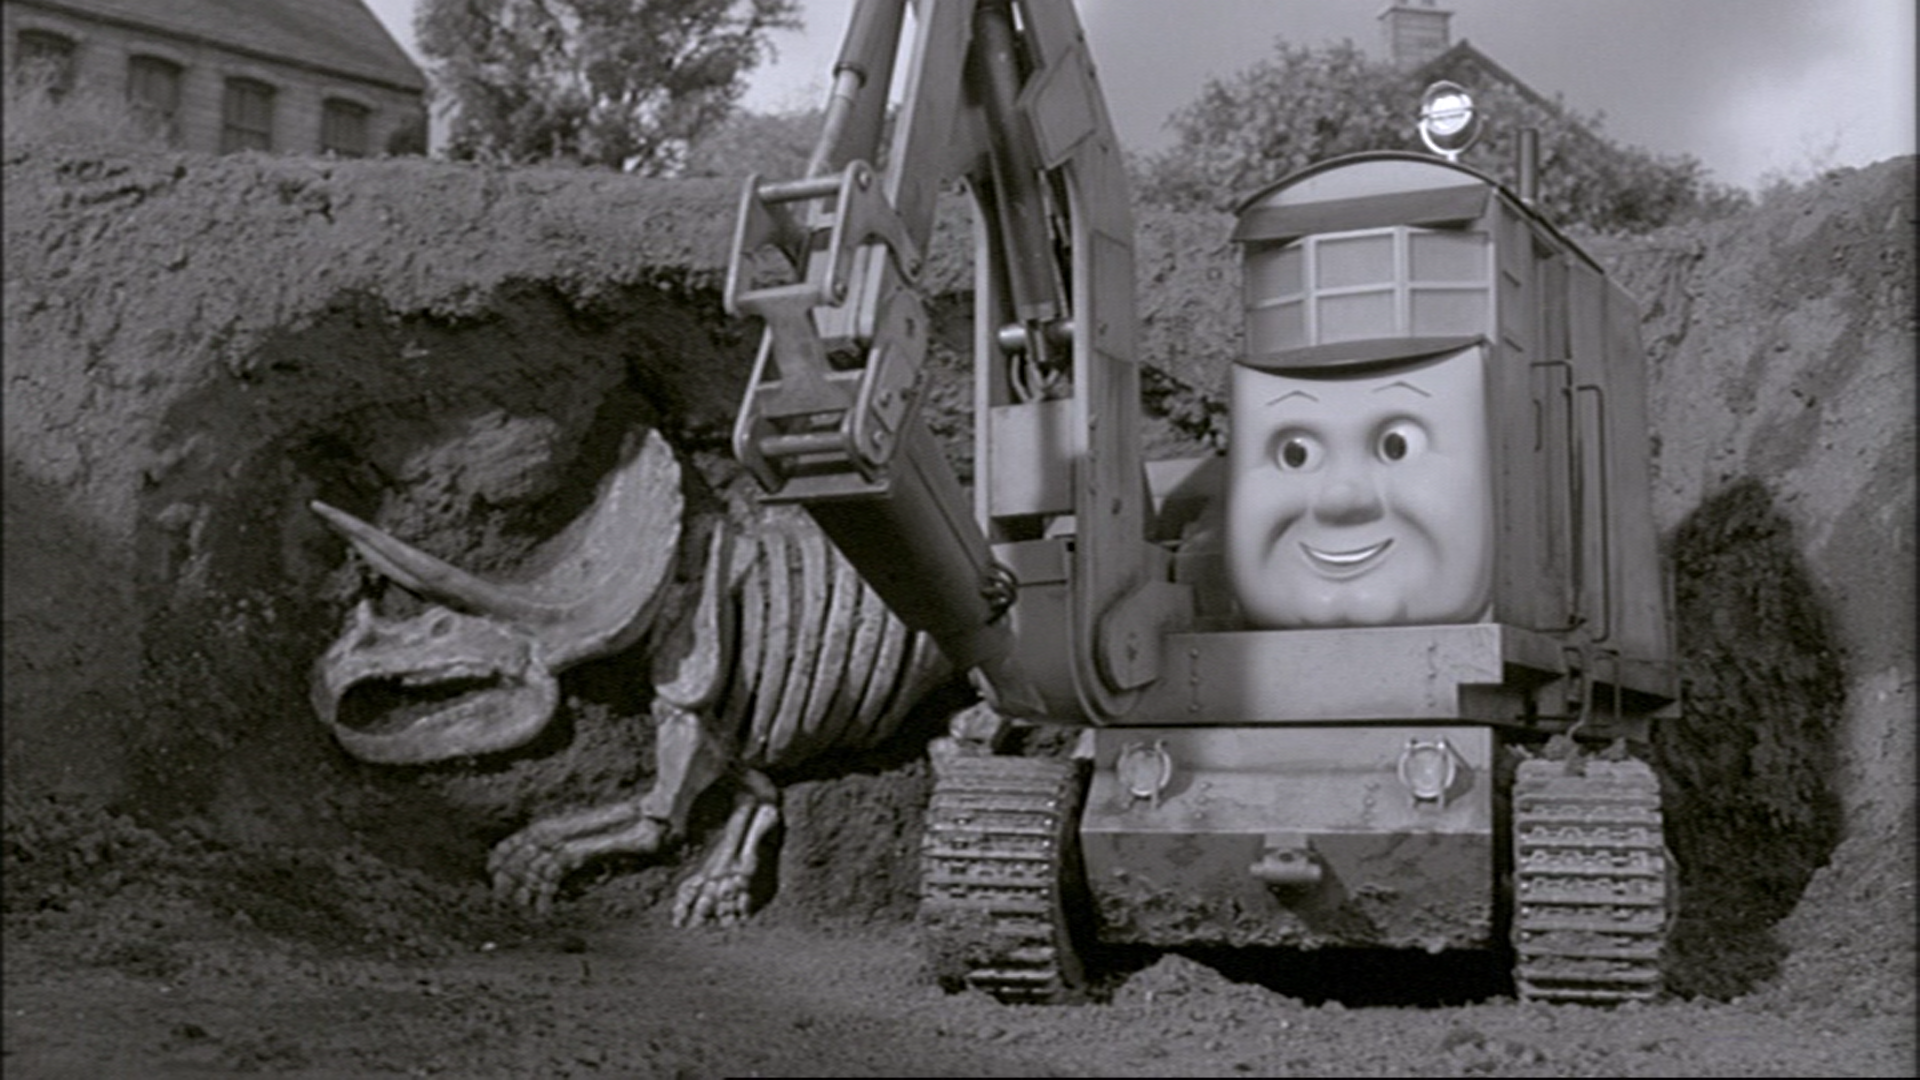 A Visit from Thomas